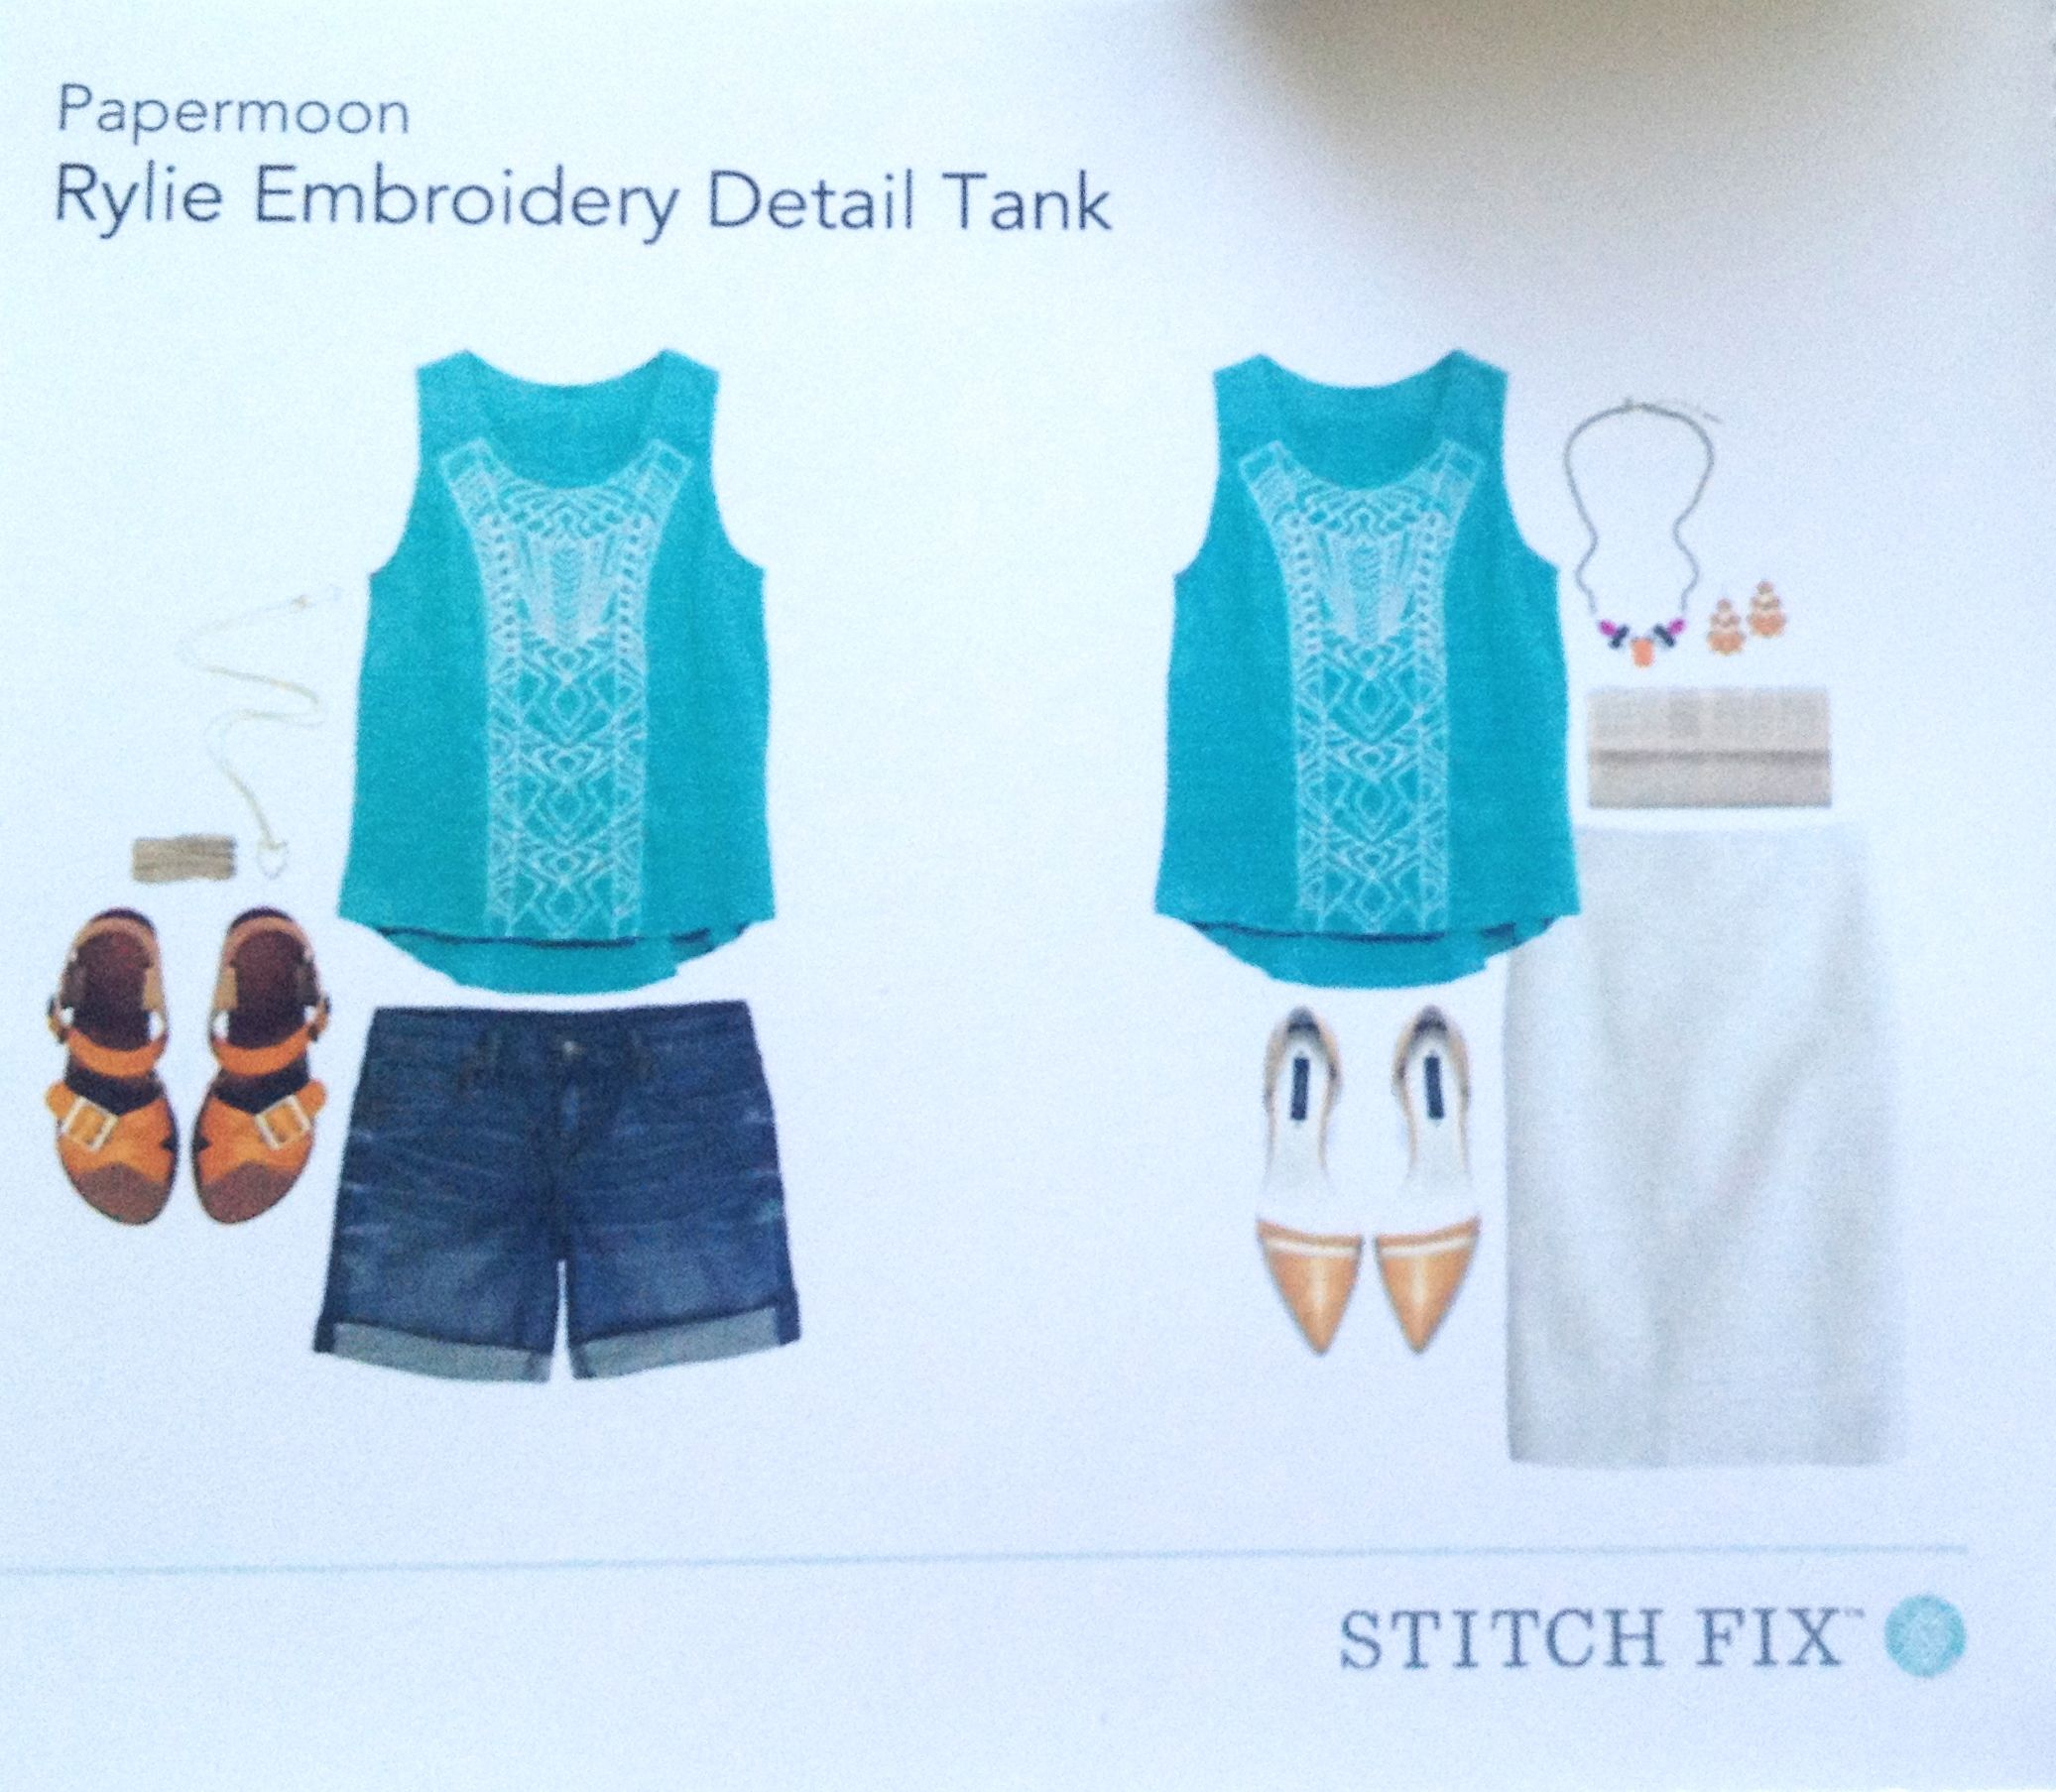 Stitch fix rylie embroidery detail tank my